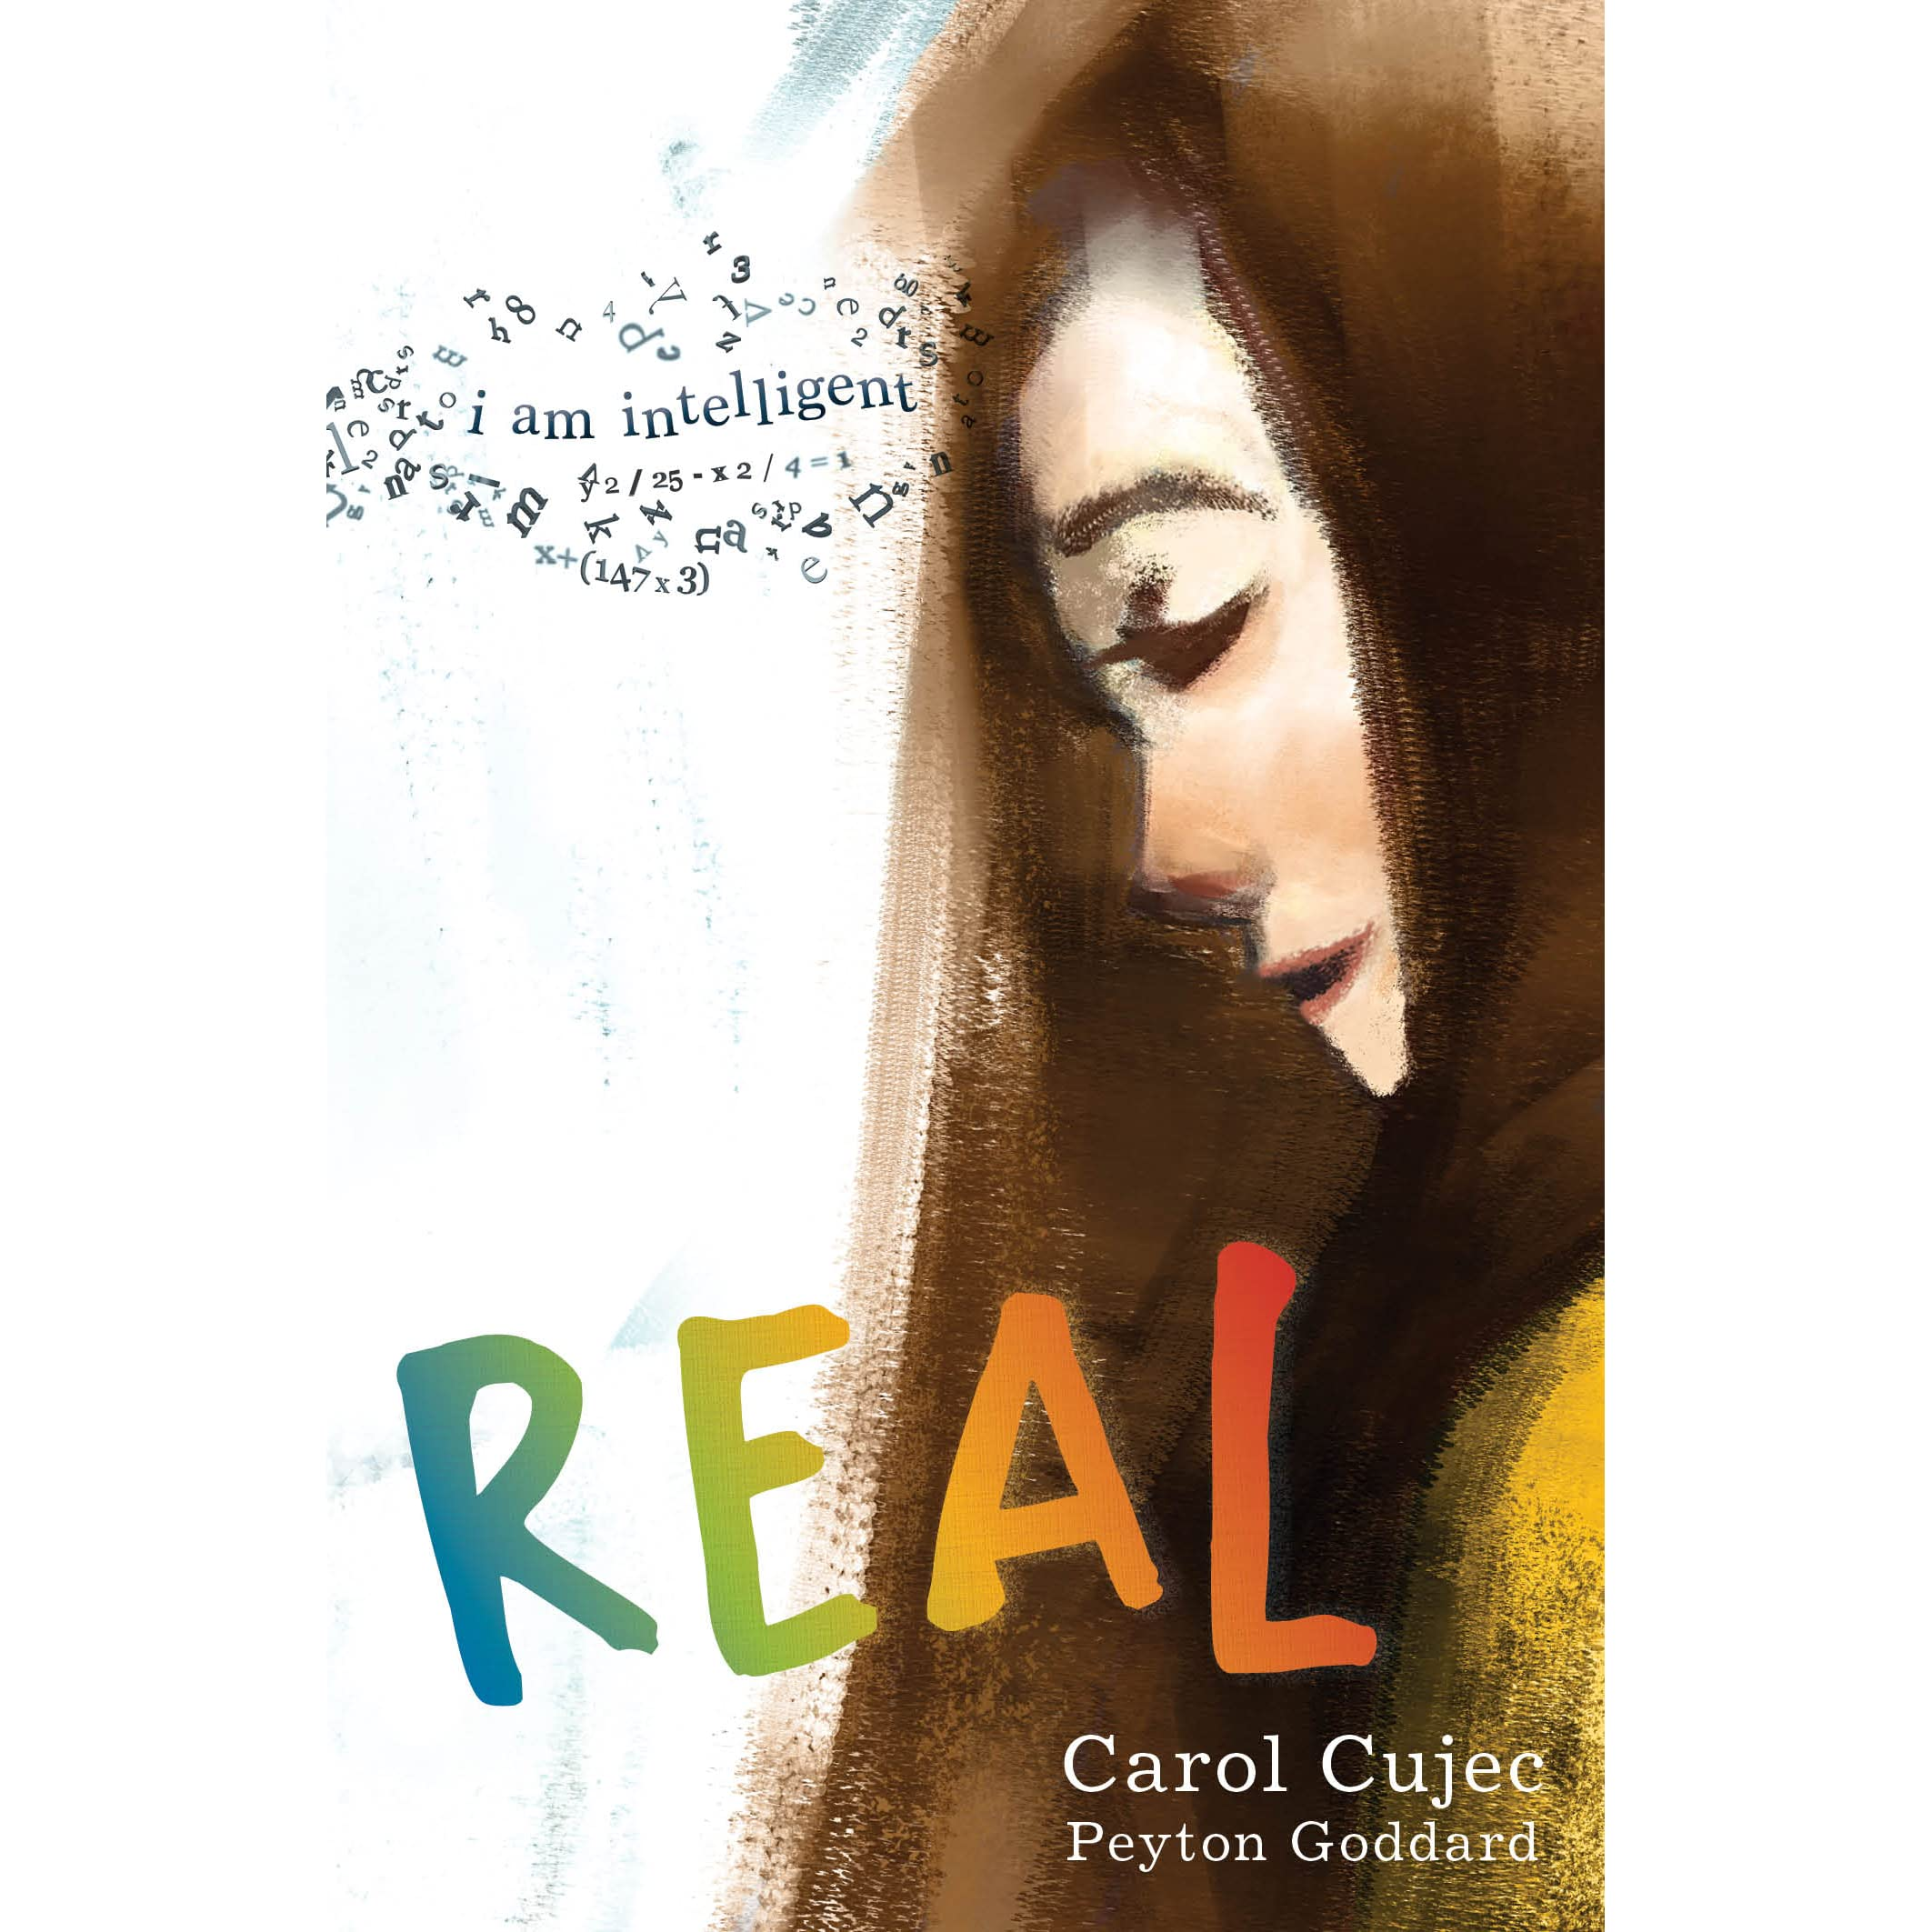 book cover of the book titled real